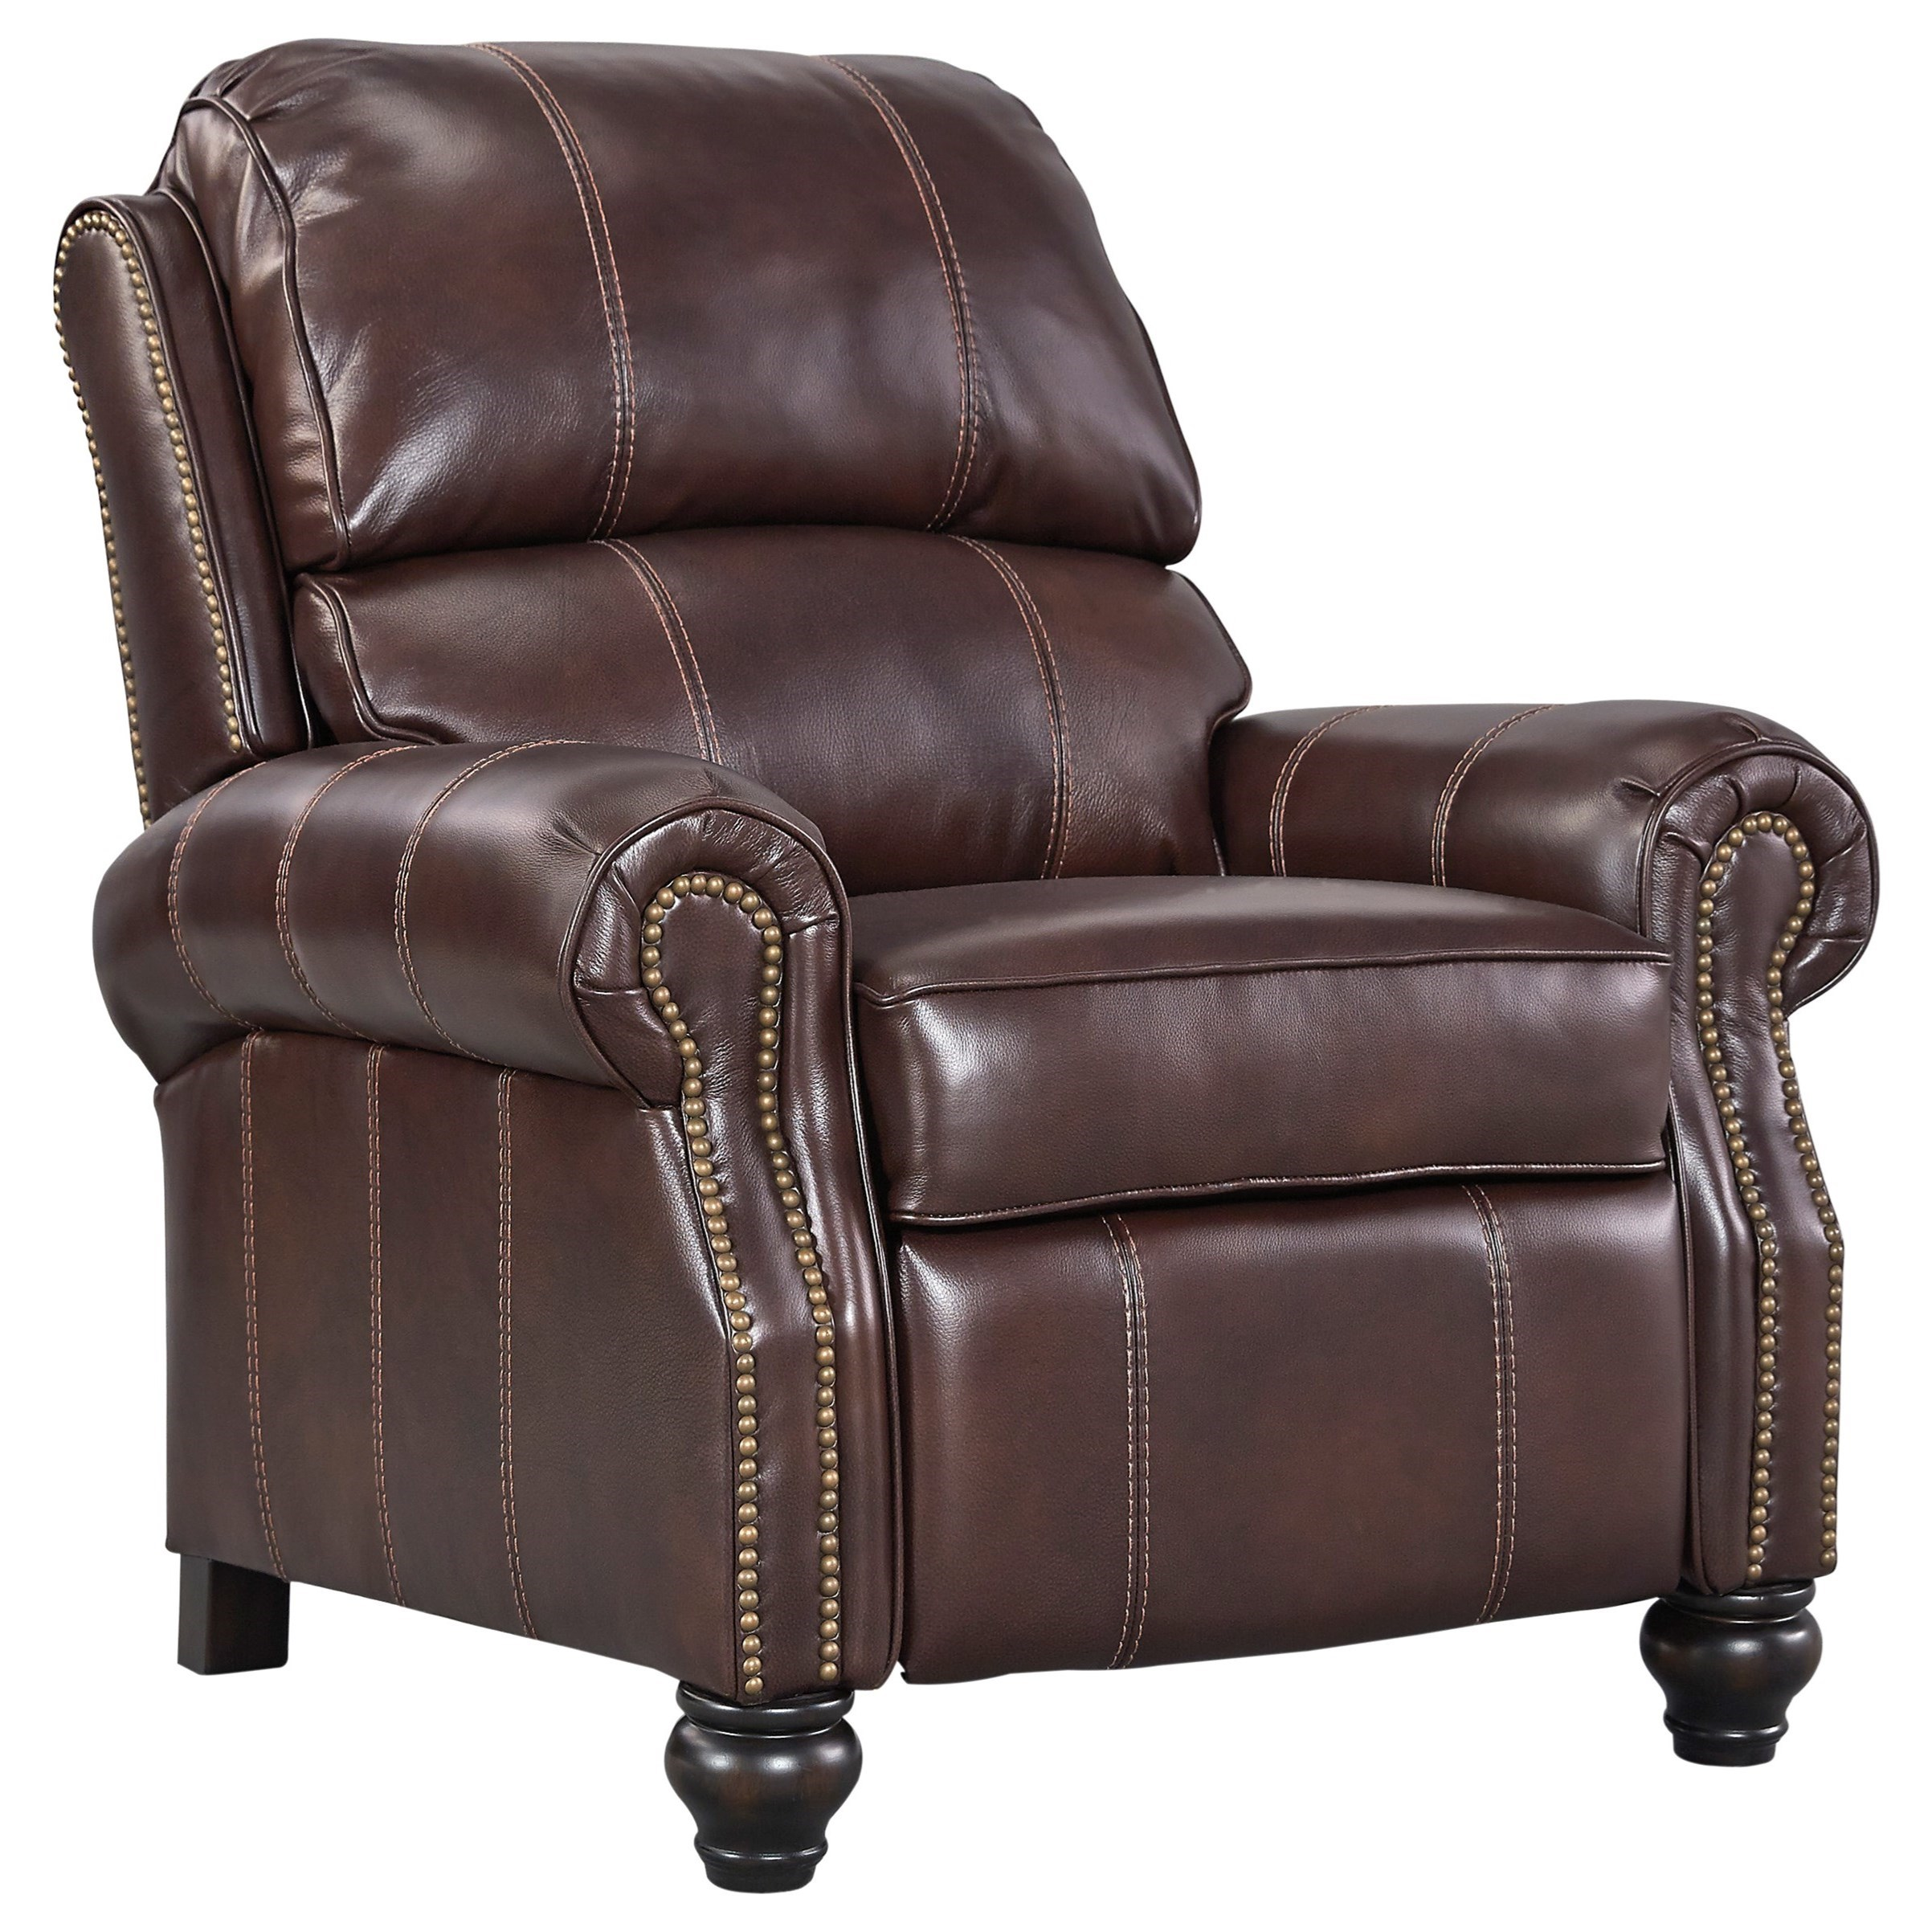 Signature Design by Ashley Glengary Low Leg Recliner - Item Number: 3170030